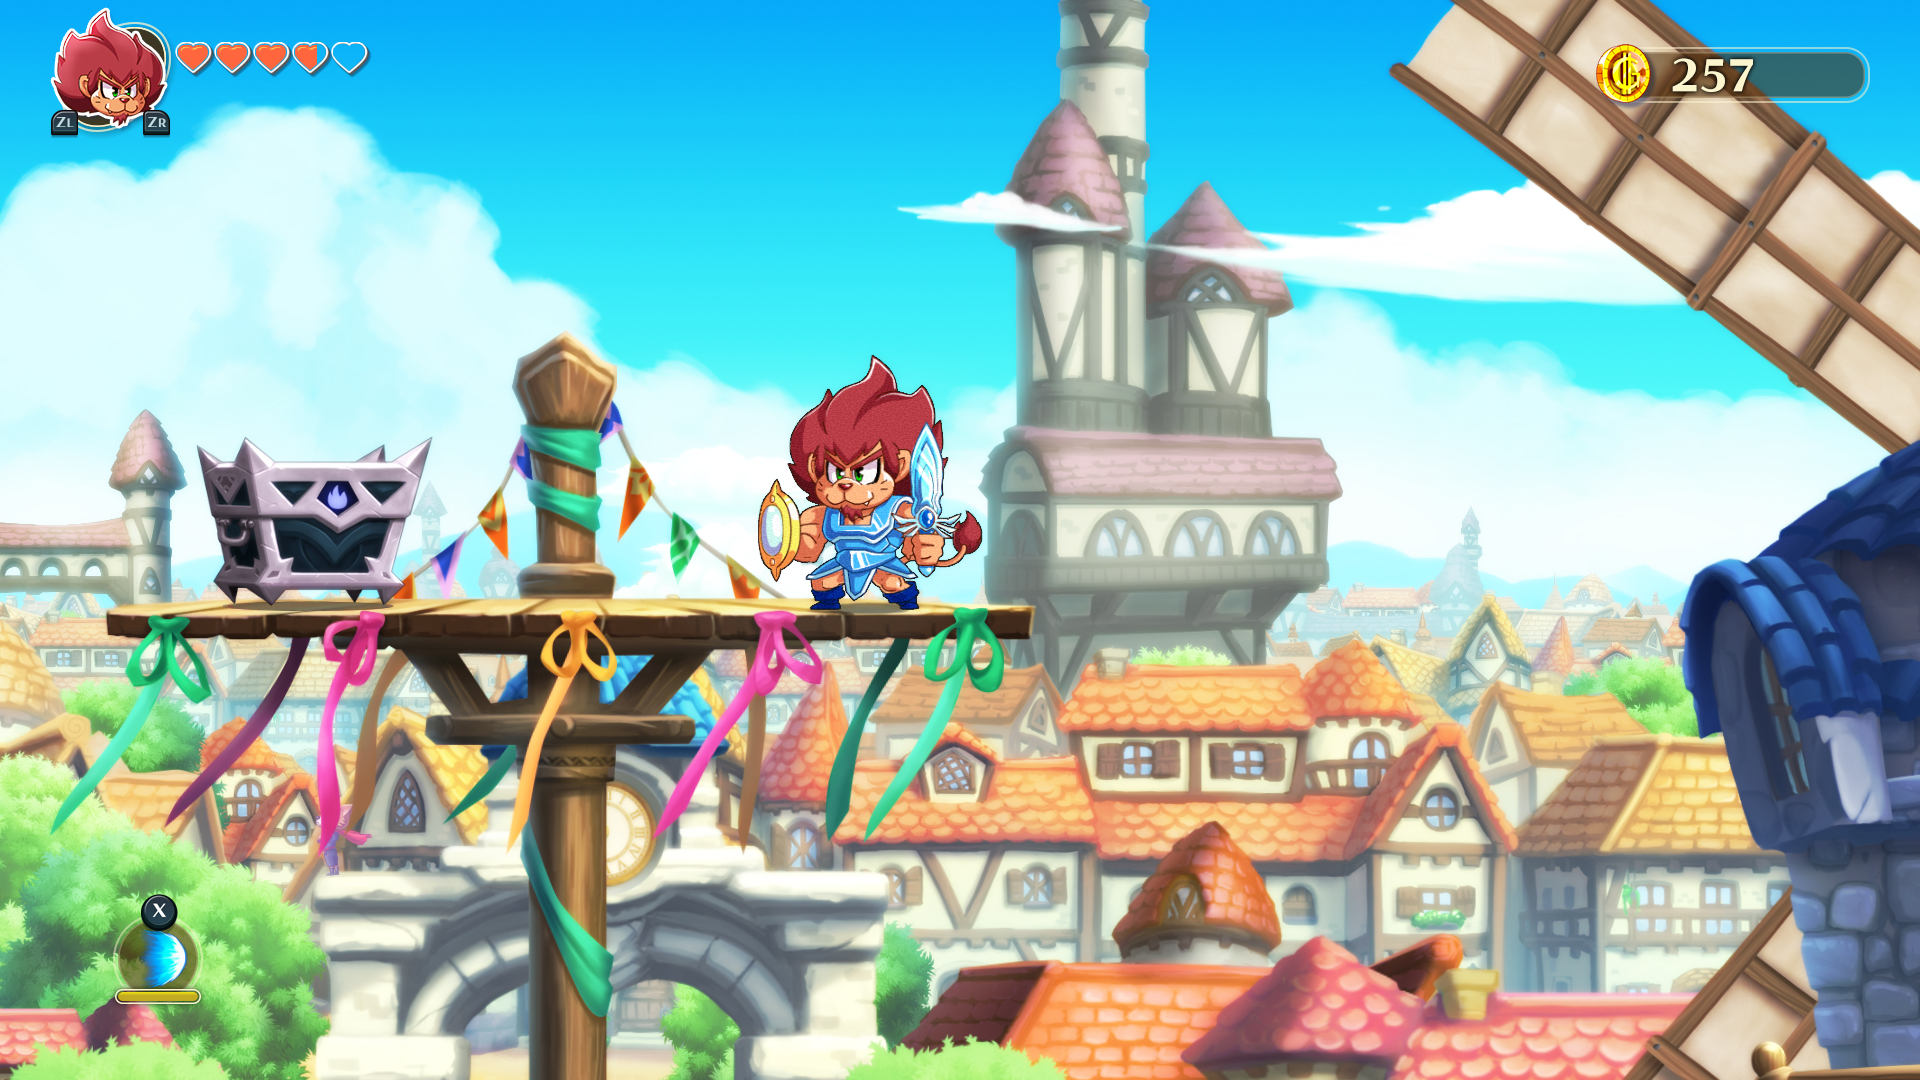 http://monsterboy.com/blog/uploads/Images/Monster_Boy_Switch_5.jpg